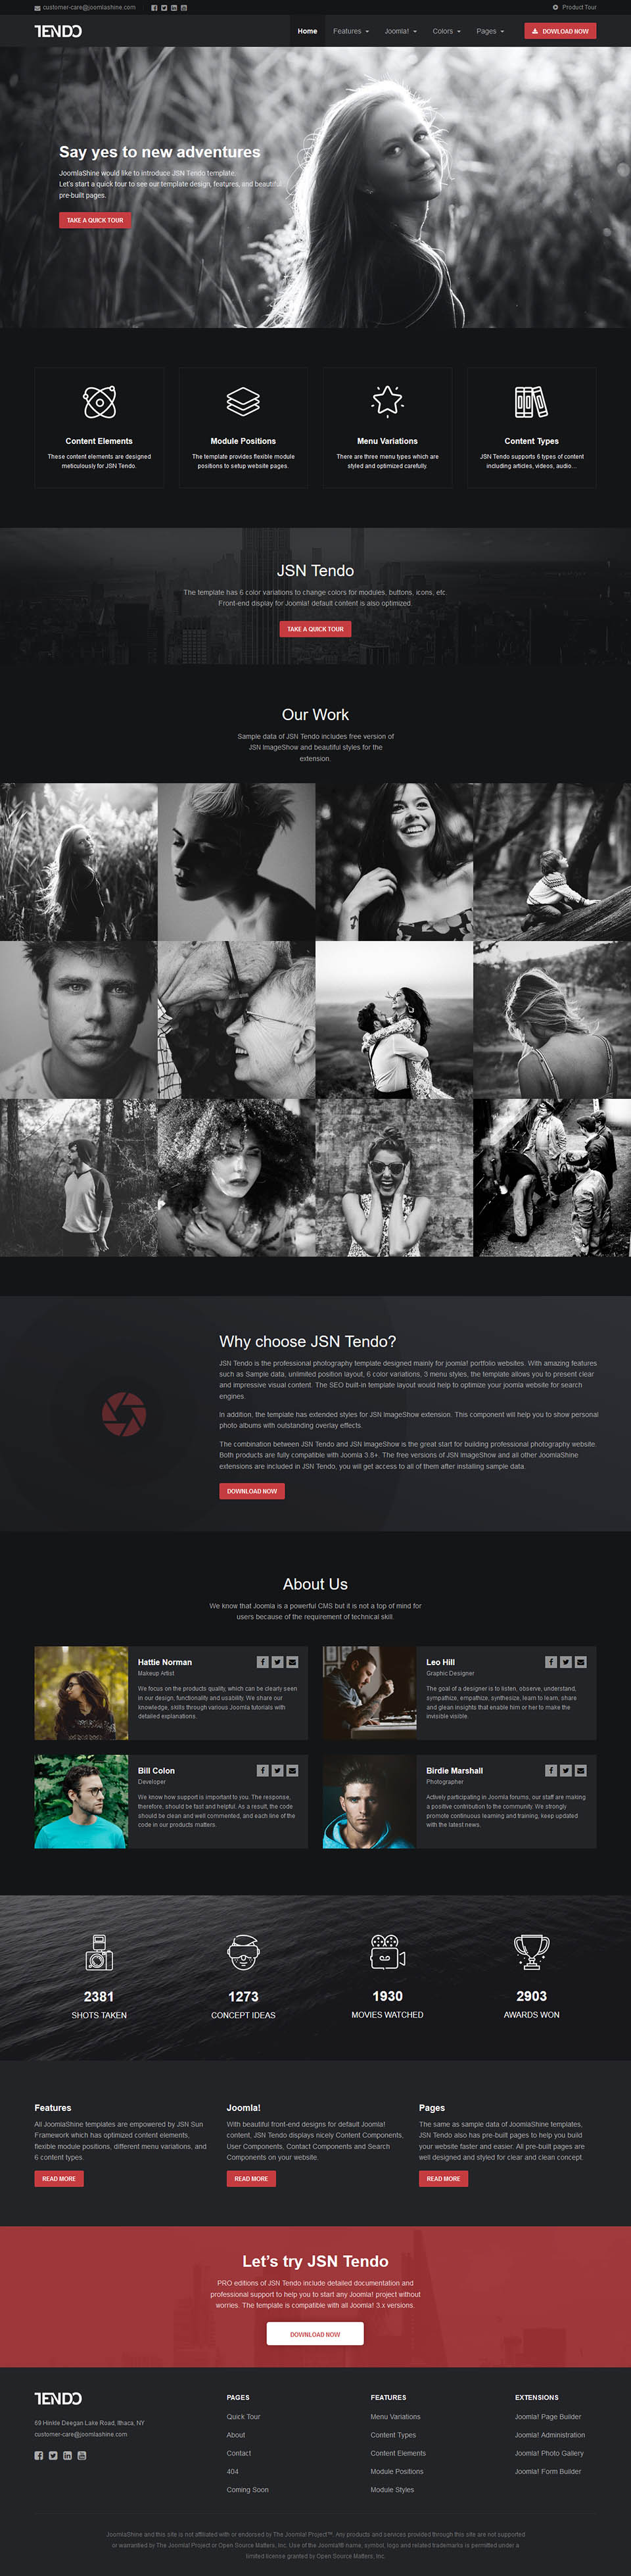 JoomlaShine JSN Tendo 2 v2 1 0 - portfolio template for Joomla